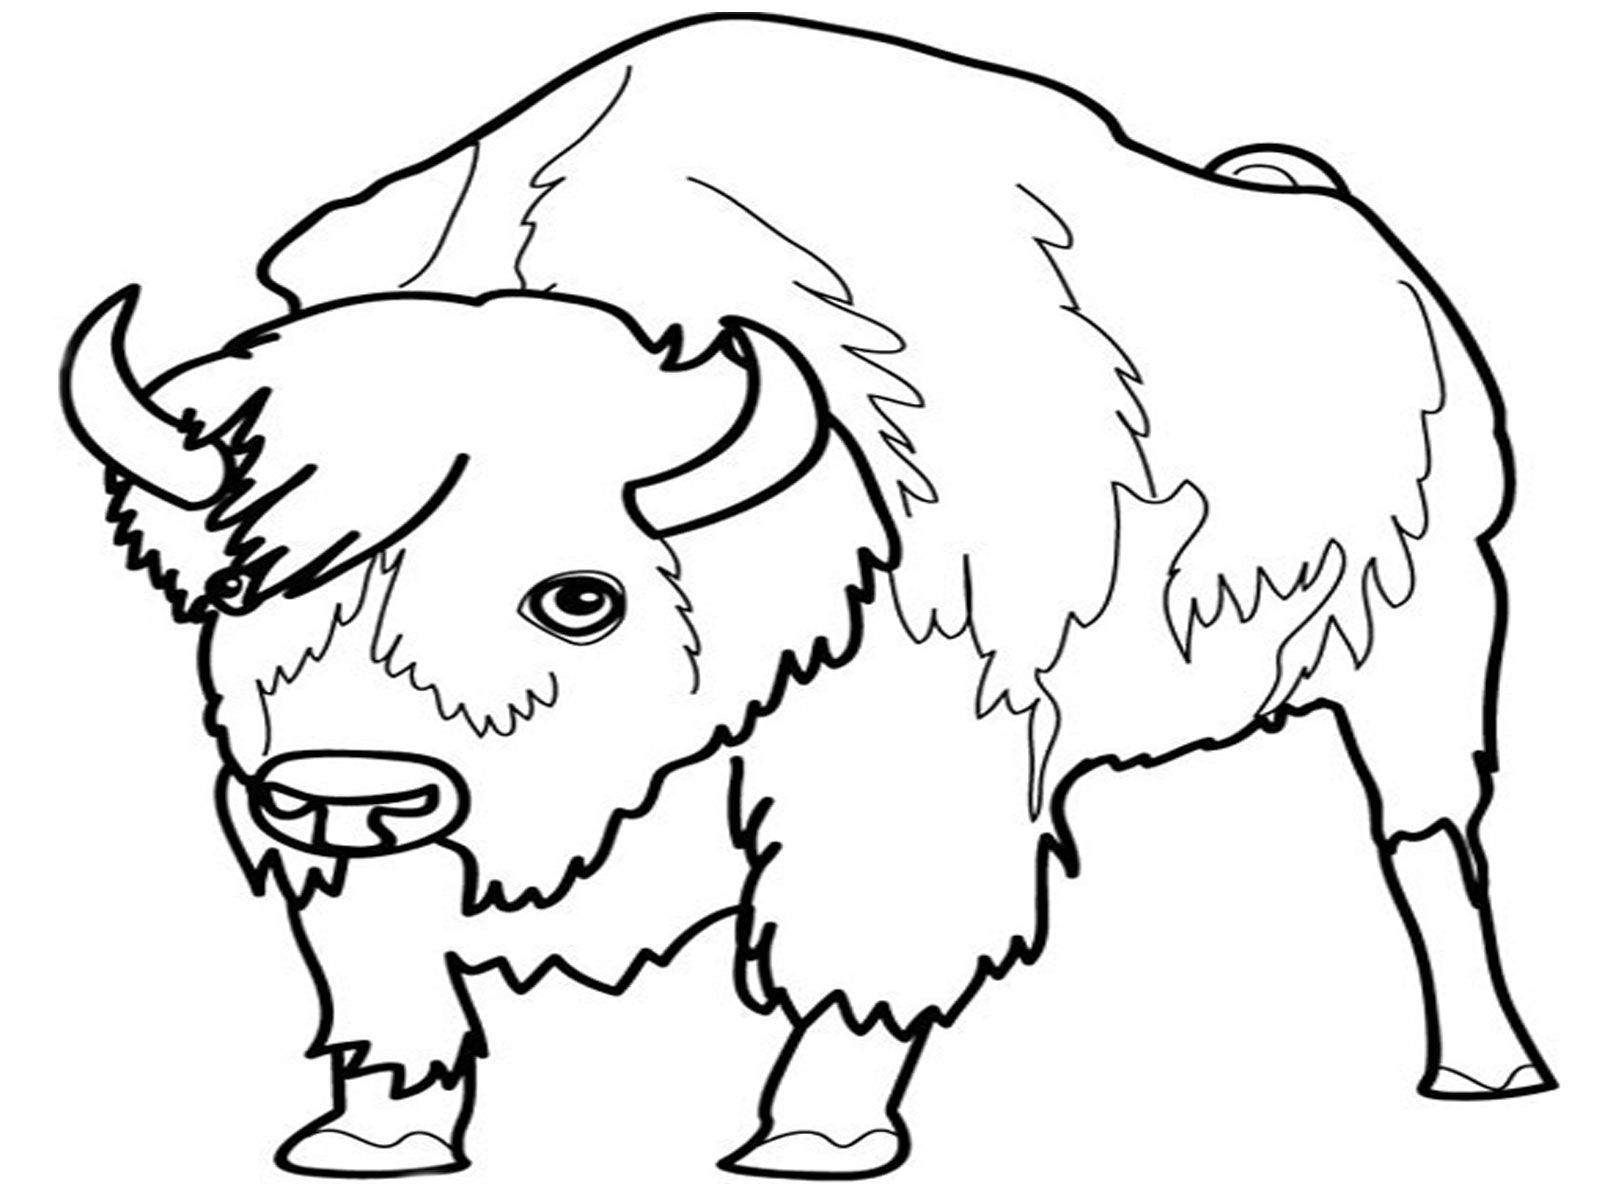 Ausmalbilder Zootiere: Grassland Animals Coloring Pages